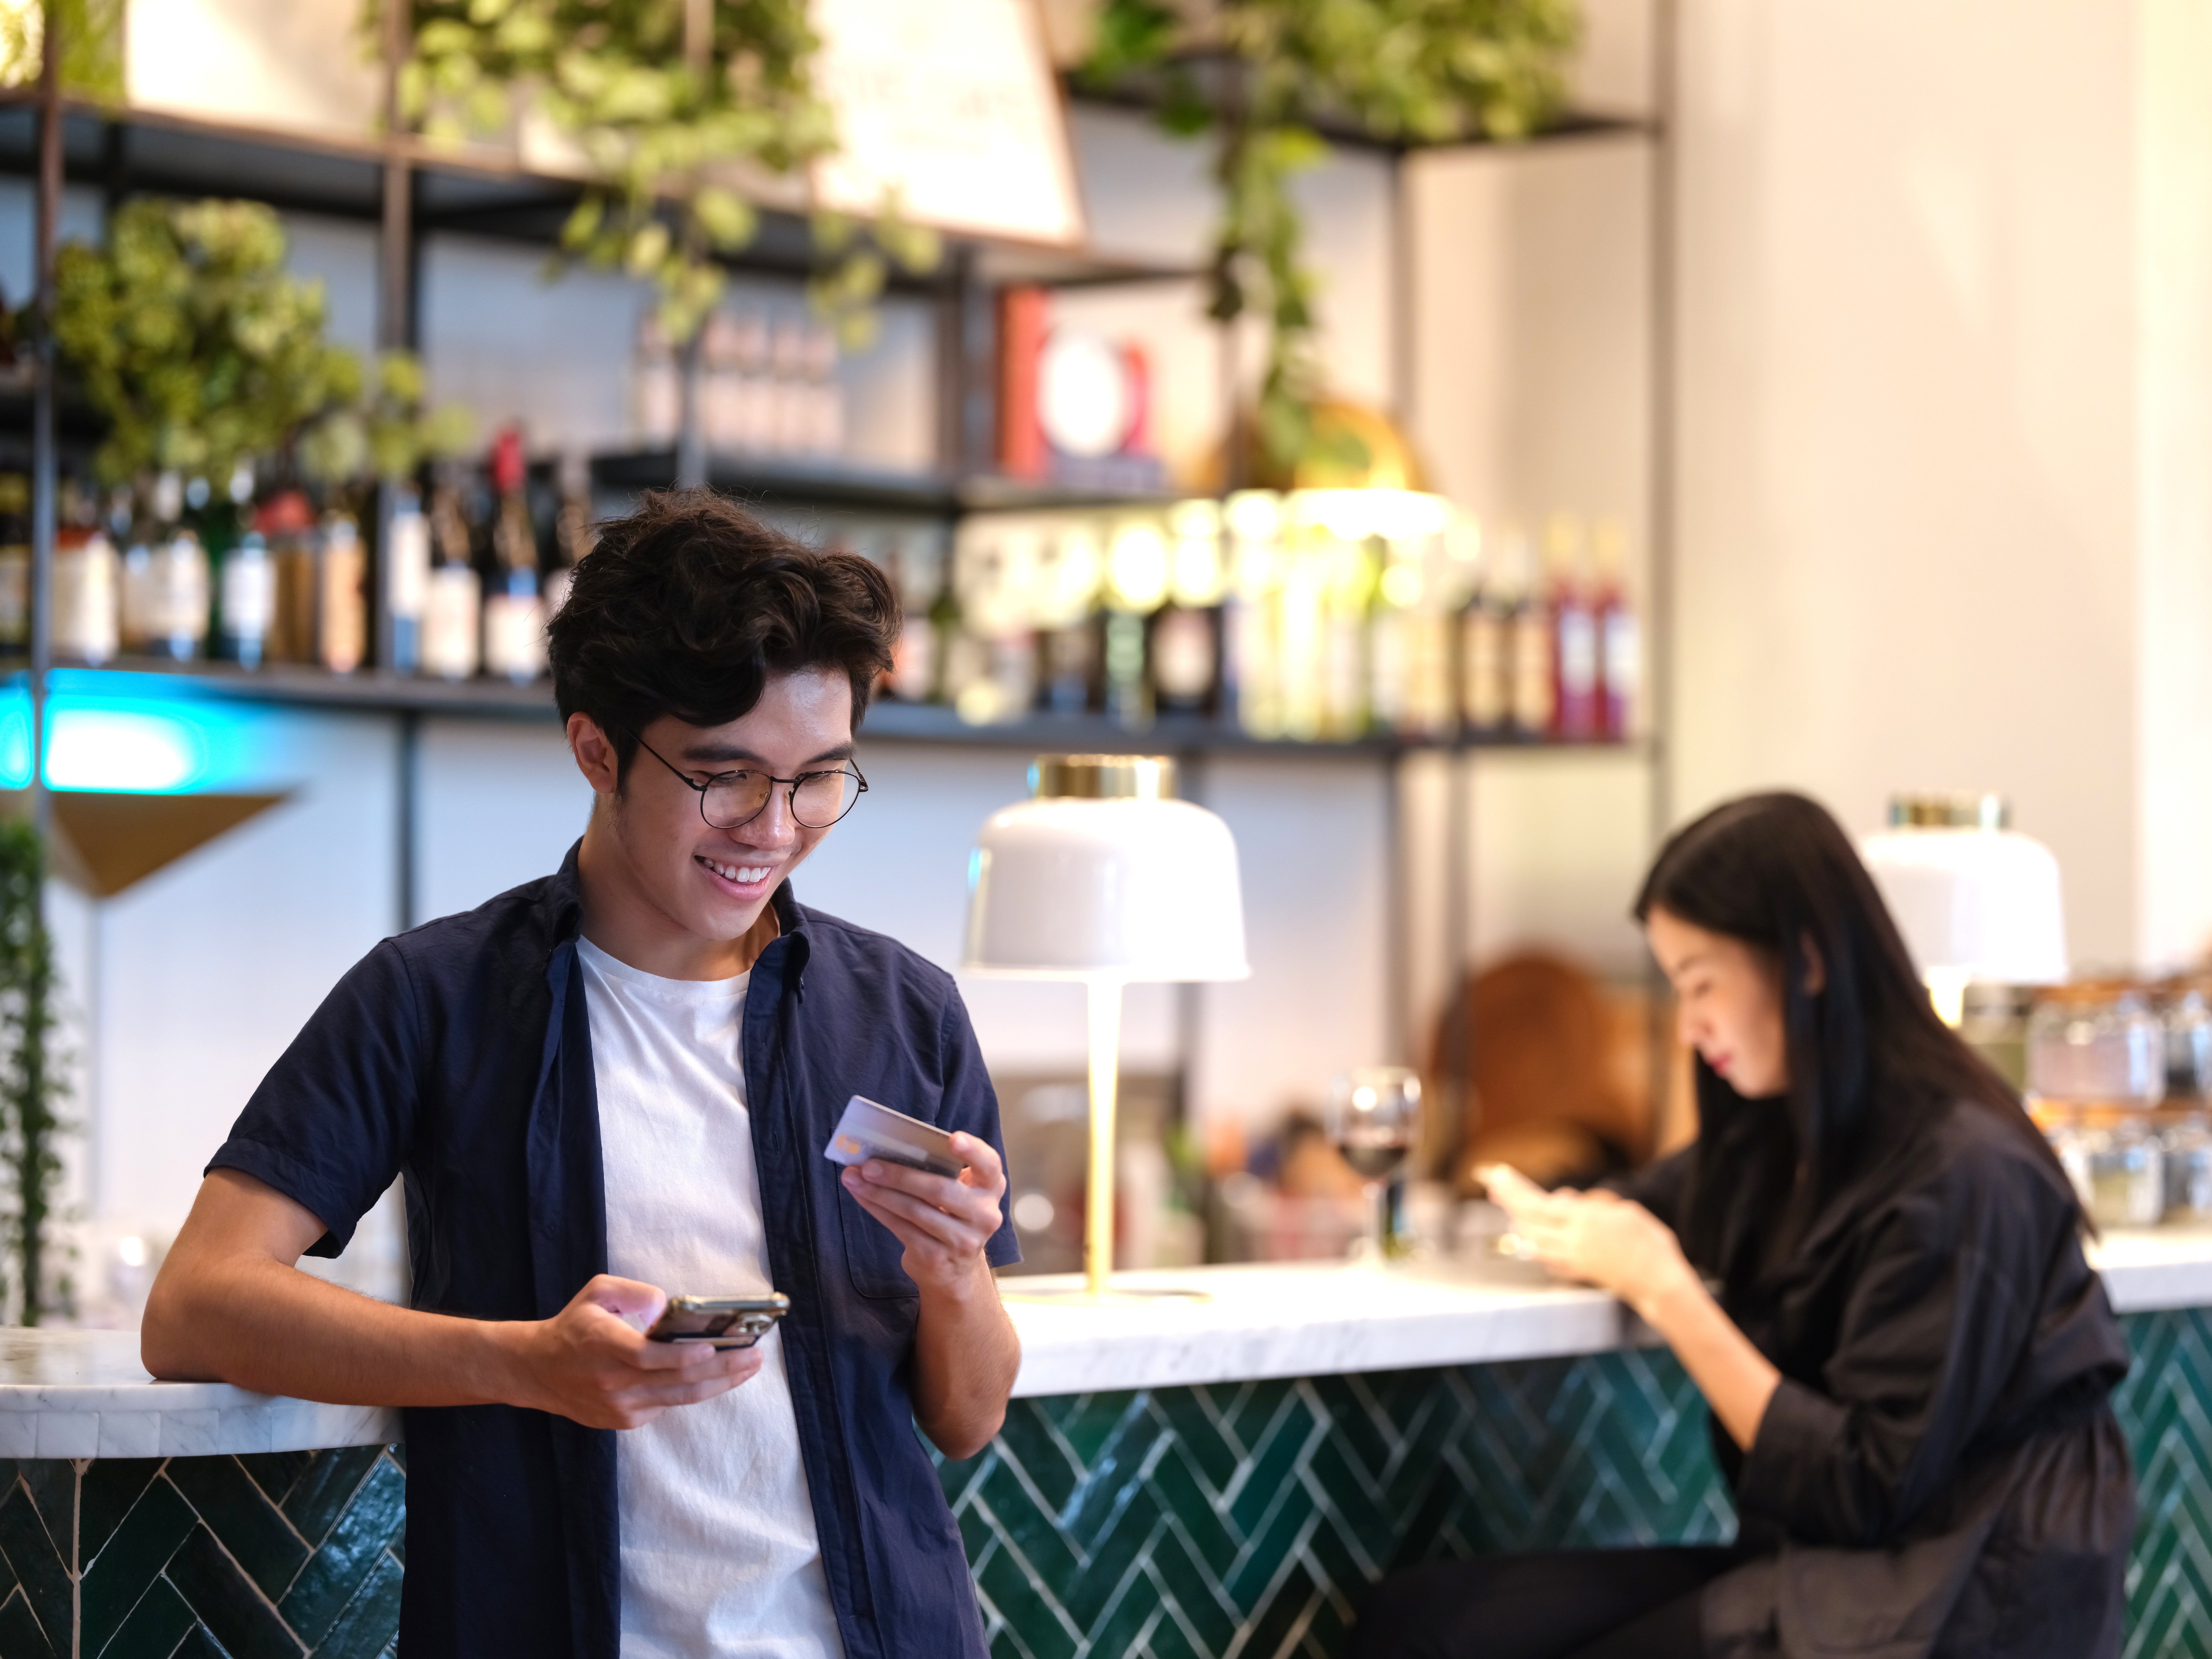 young man using his cellphone to complete online banking transaction